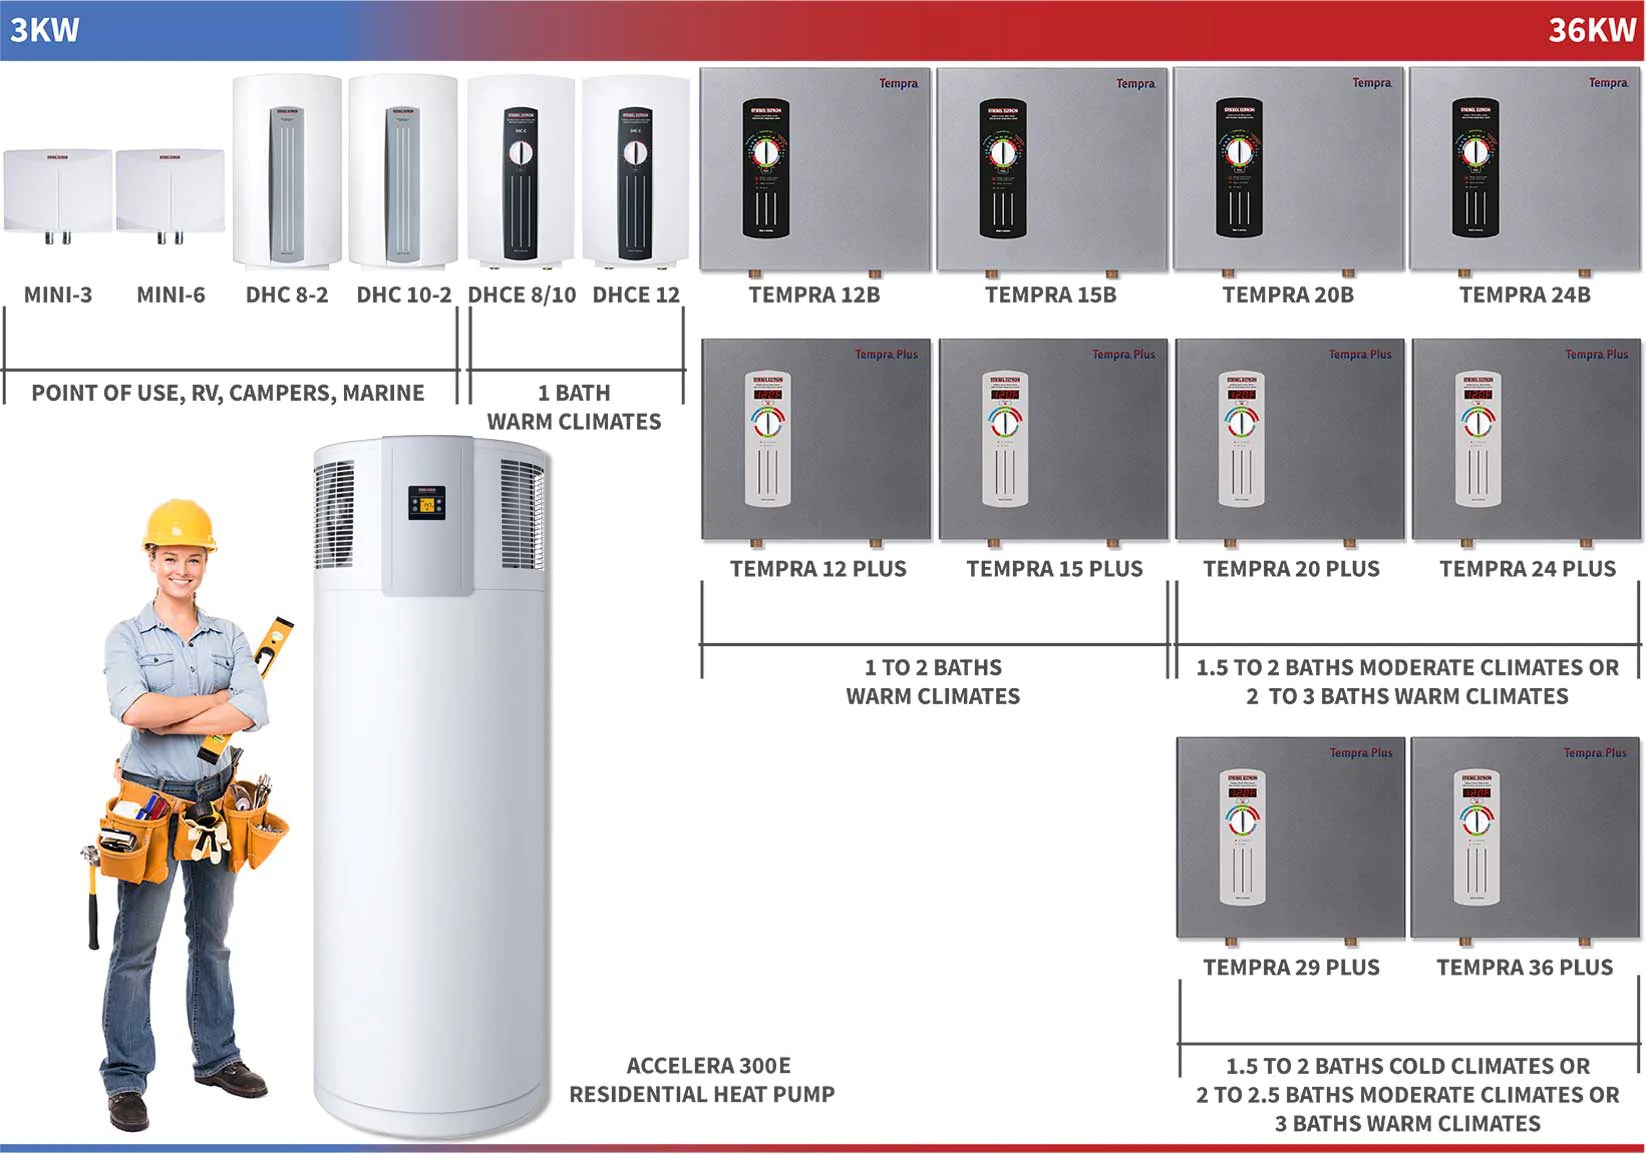 Händetrockner Hte 4 Stiebel Eltron What Size Tankless Water Heater Do I Need Tank The Tank